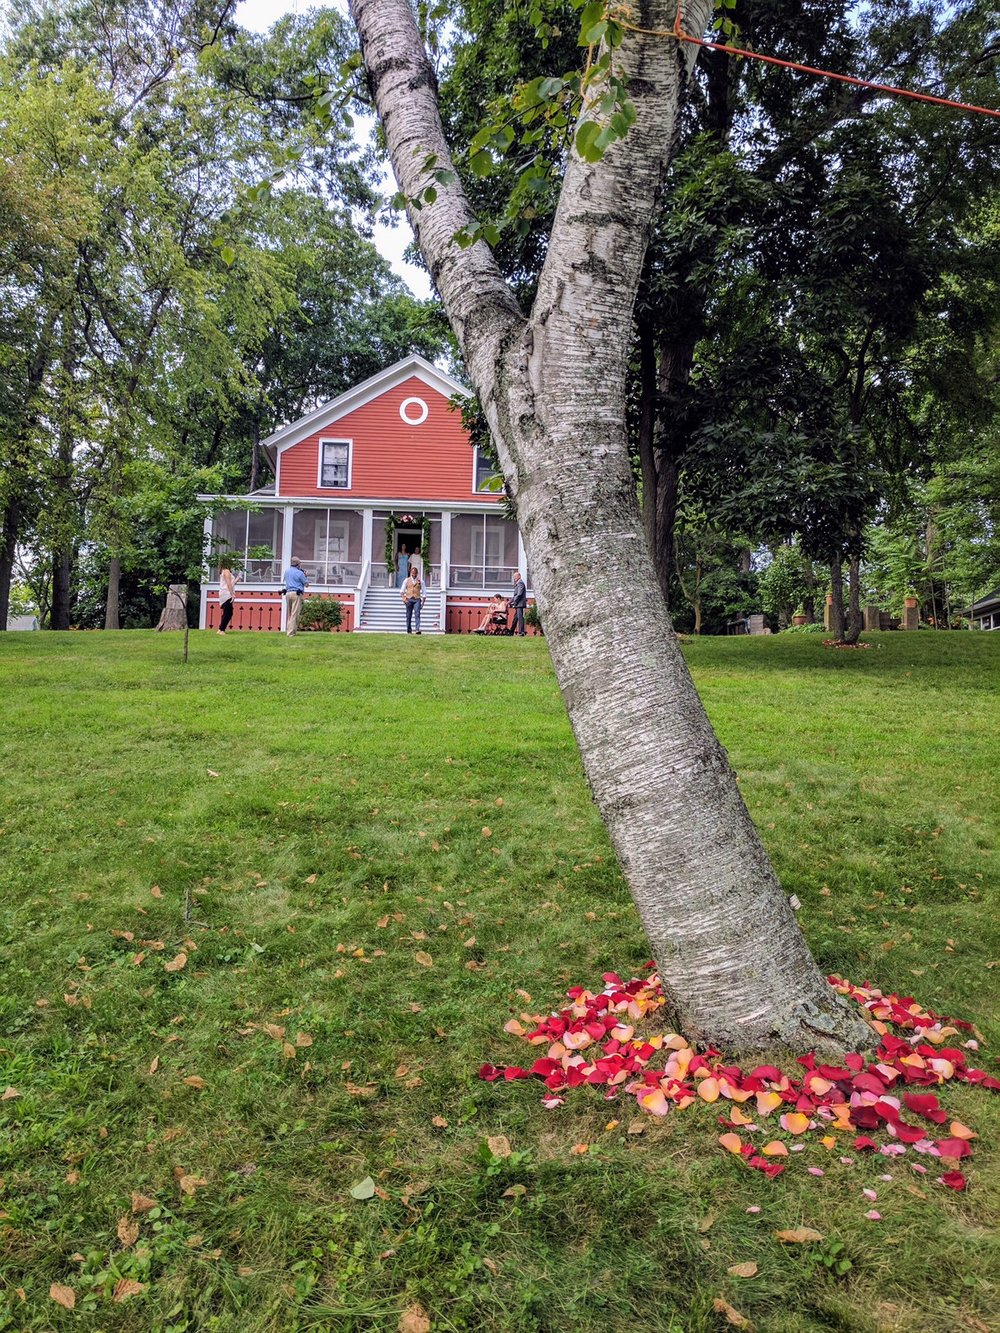 What do they have in common? - These weddings tend to be more intimate. The total number of guests comes to about 100 and they're usually outdoors for both the ceremony and reception. (mostly with a tent for reception)Most of our clients who have chosen a destination wedding to Wisconsin, also have WI roots and/or backgrounds. However, one couple  last year just loved the summer weather here in Wisconsin.